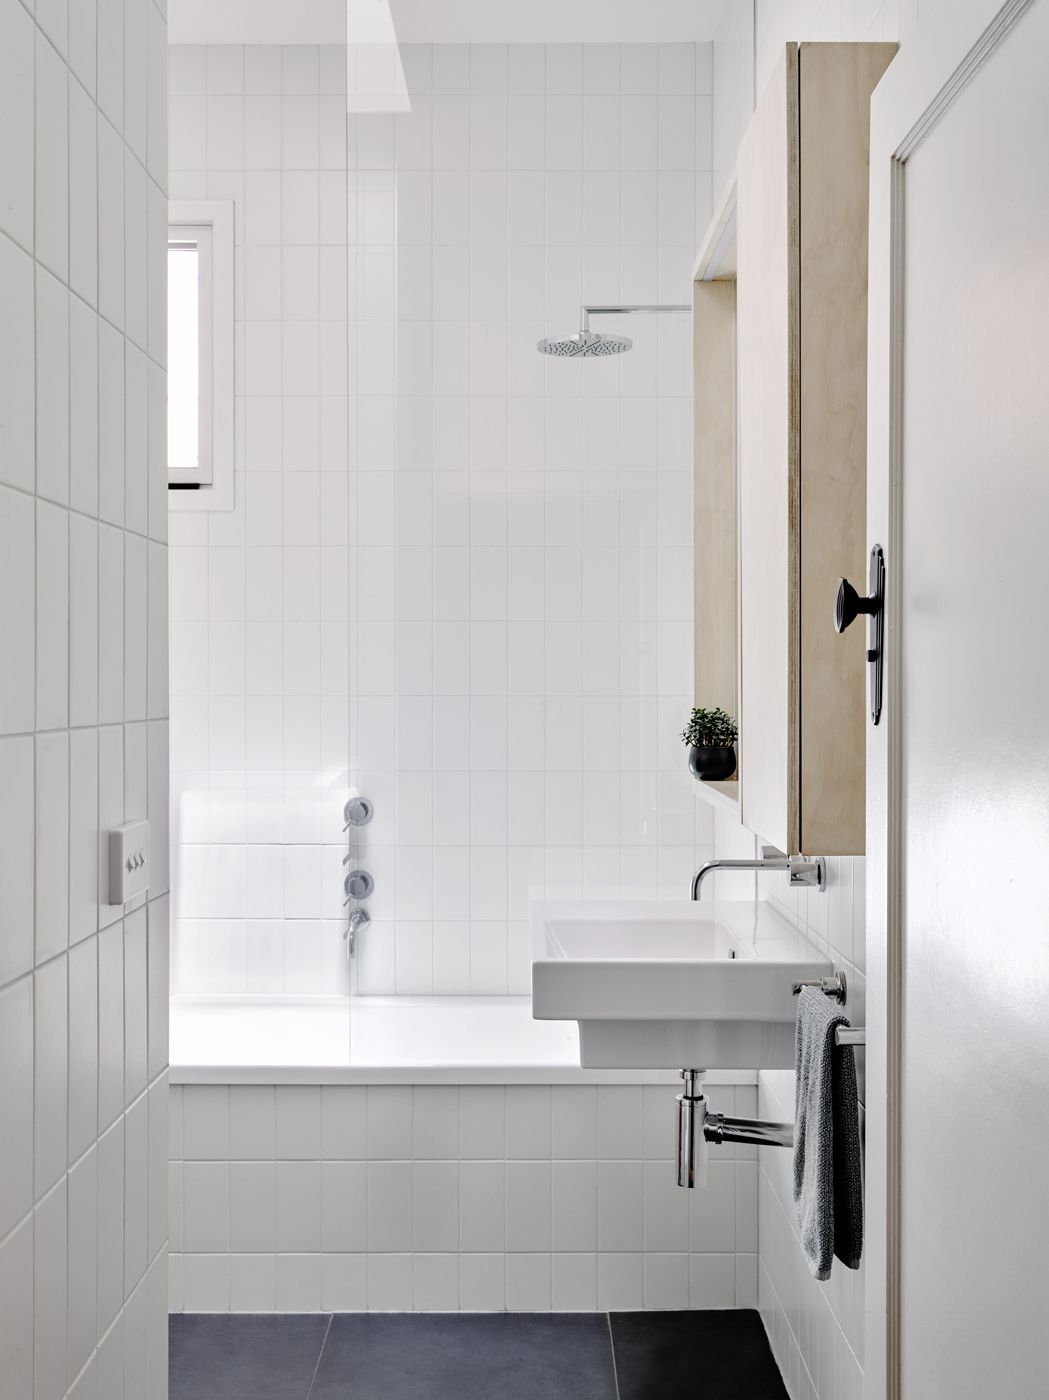 explore bathroom plans bathroom ideas and more - Bathroom Ideas Melbourne